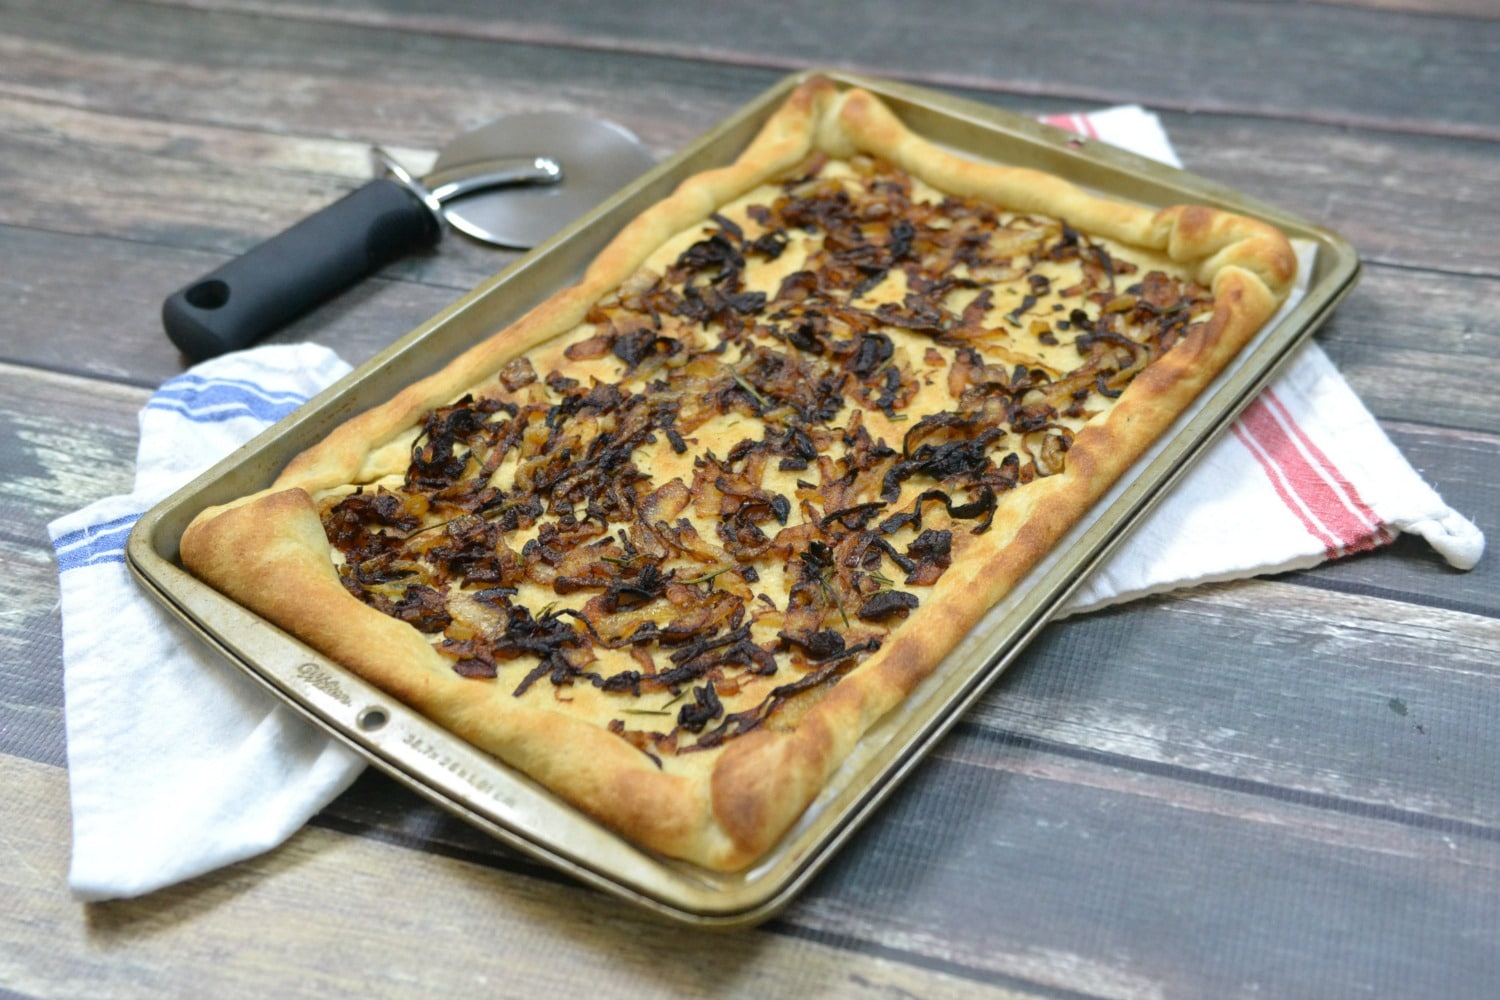 Bake caramelized onion flatbread until lightly browned.